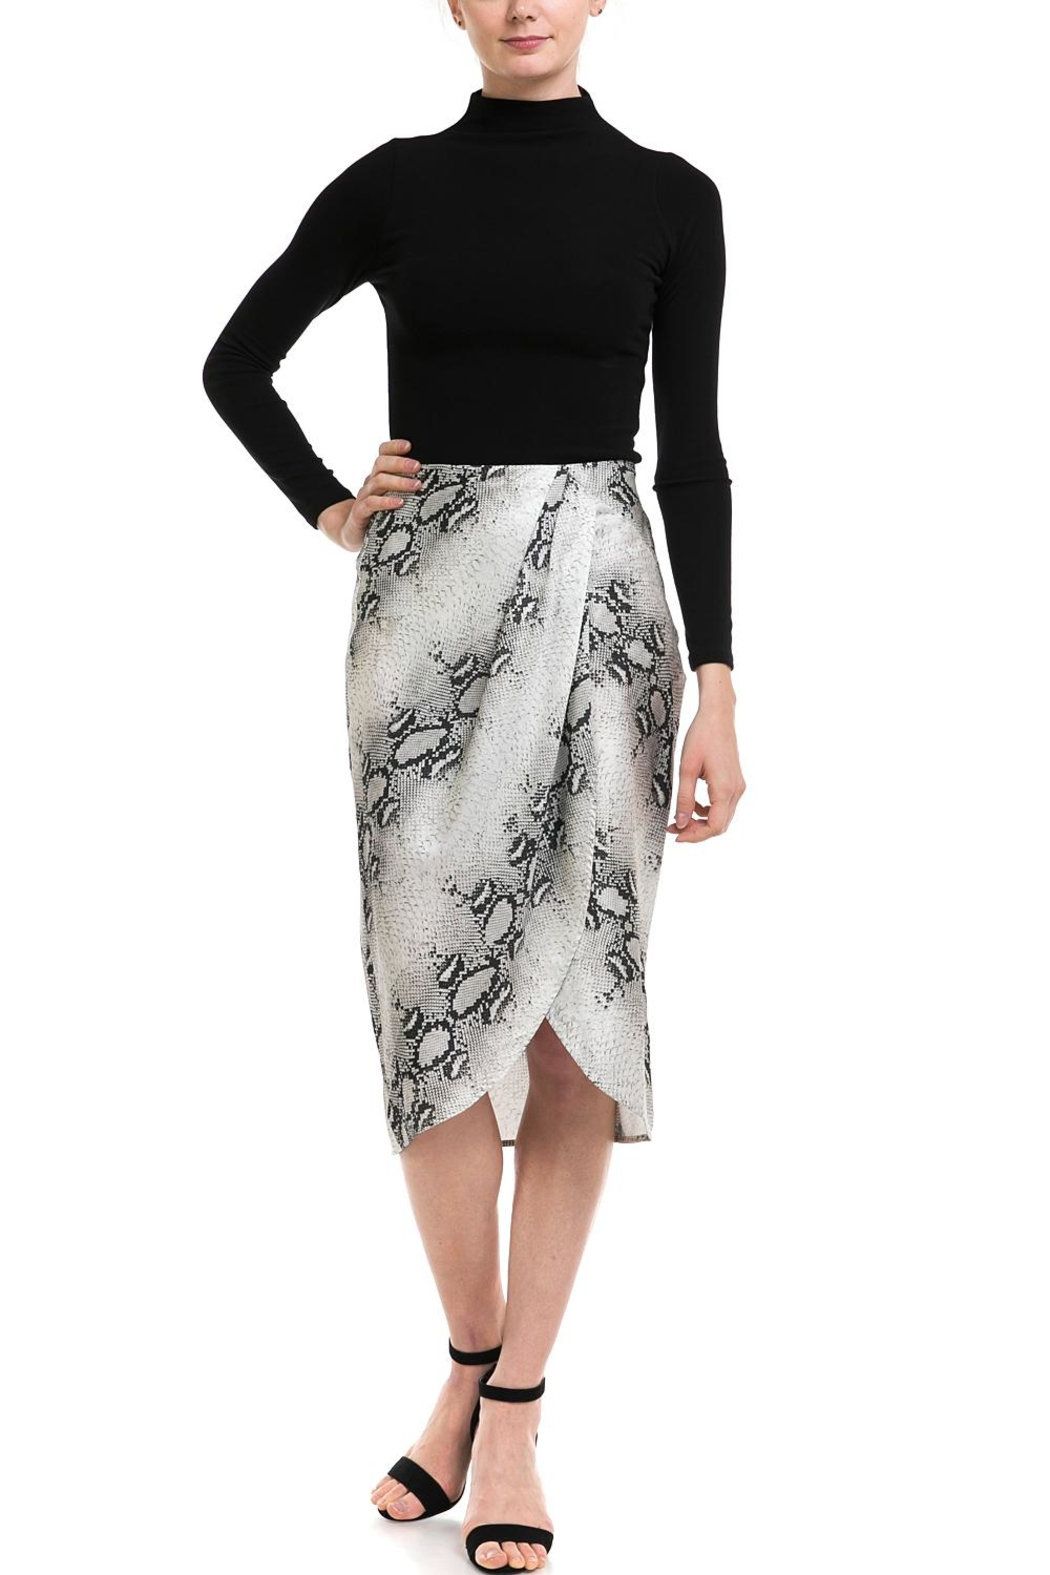 dress forum Snake-Print Overwrap Skirt - Side Cropped Image